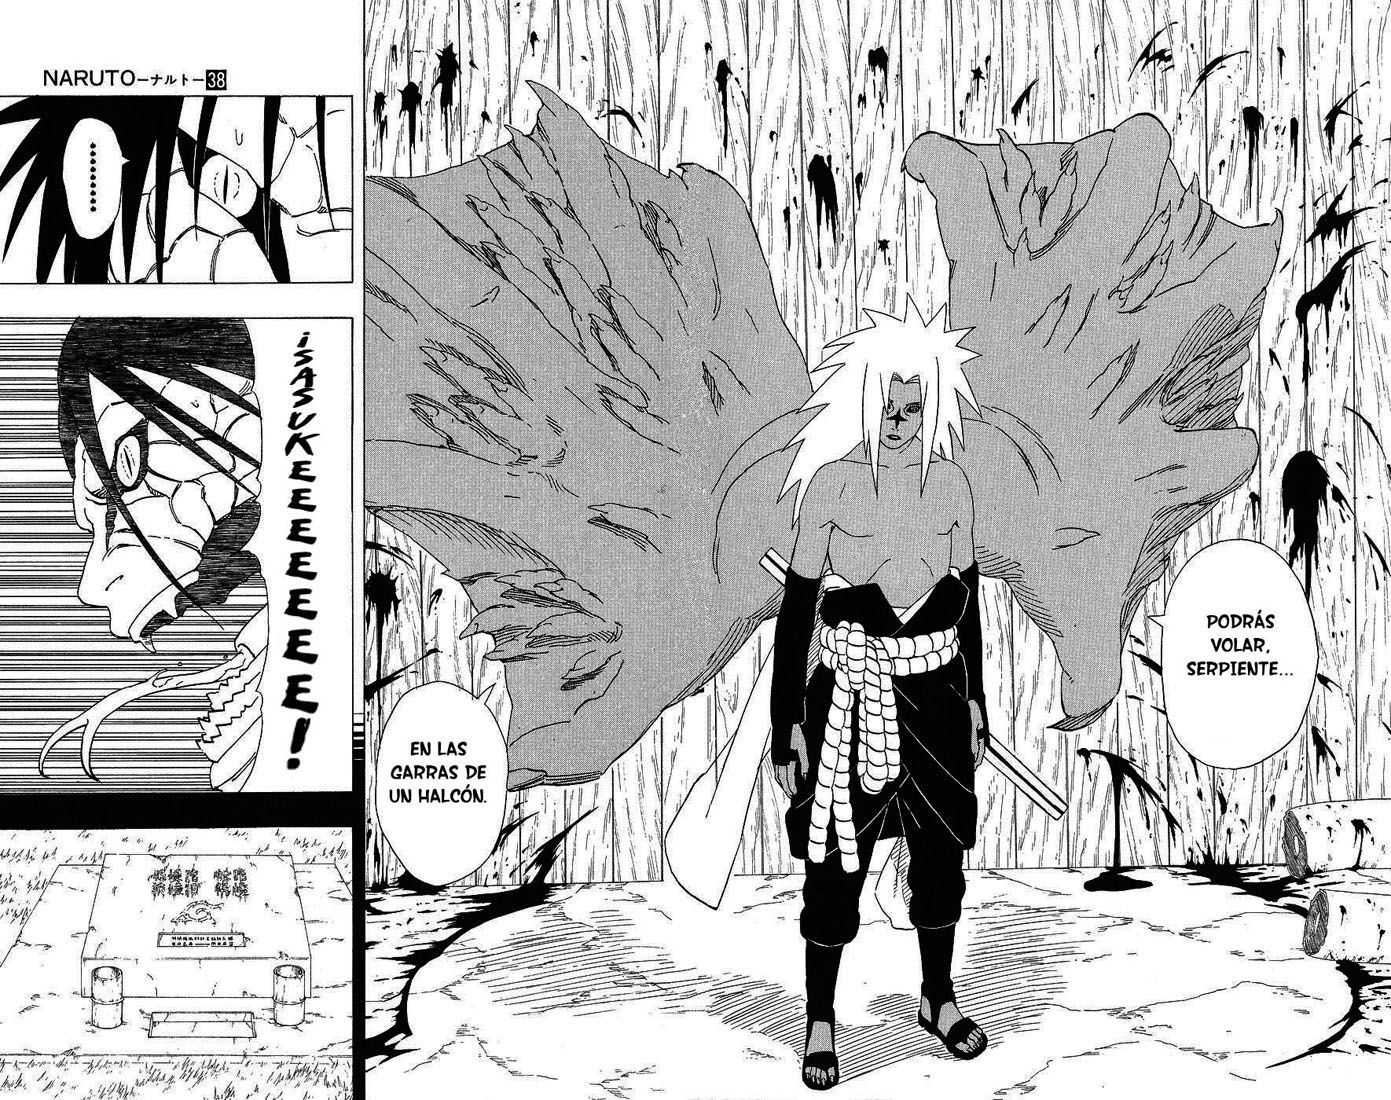 Naruto manga 344 espaol online hd descargar gratis pacovi 2 naruto 344 read manga online in english you can read free series online and english subtitle voltagebd